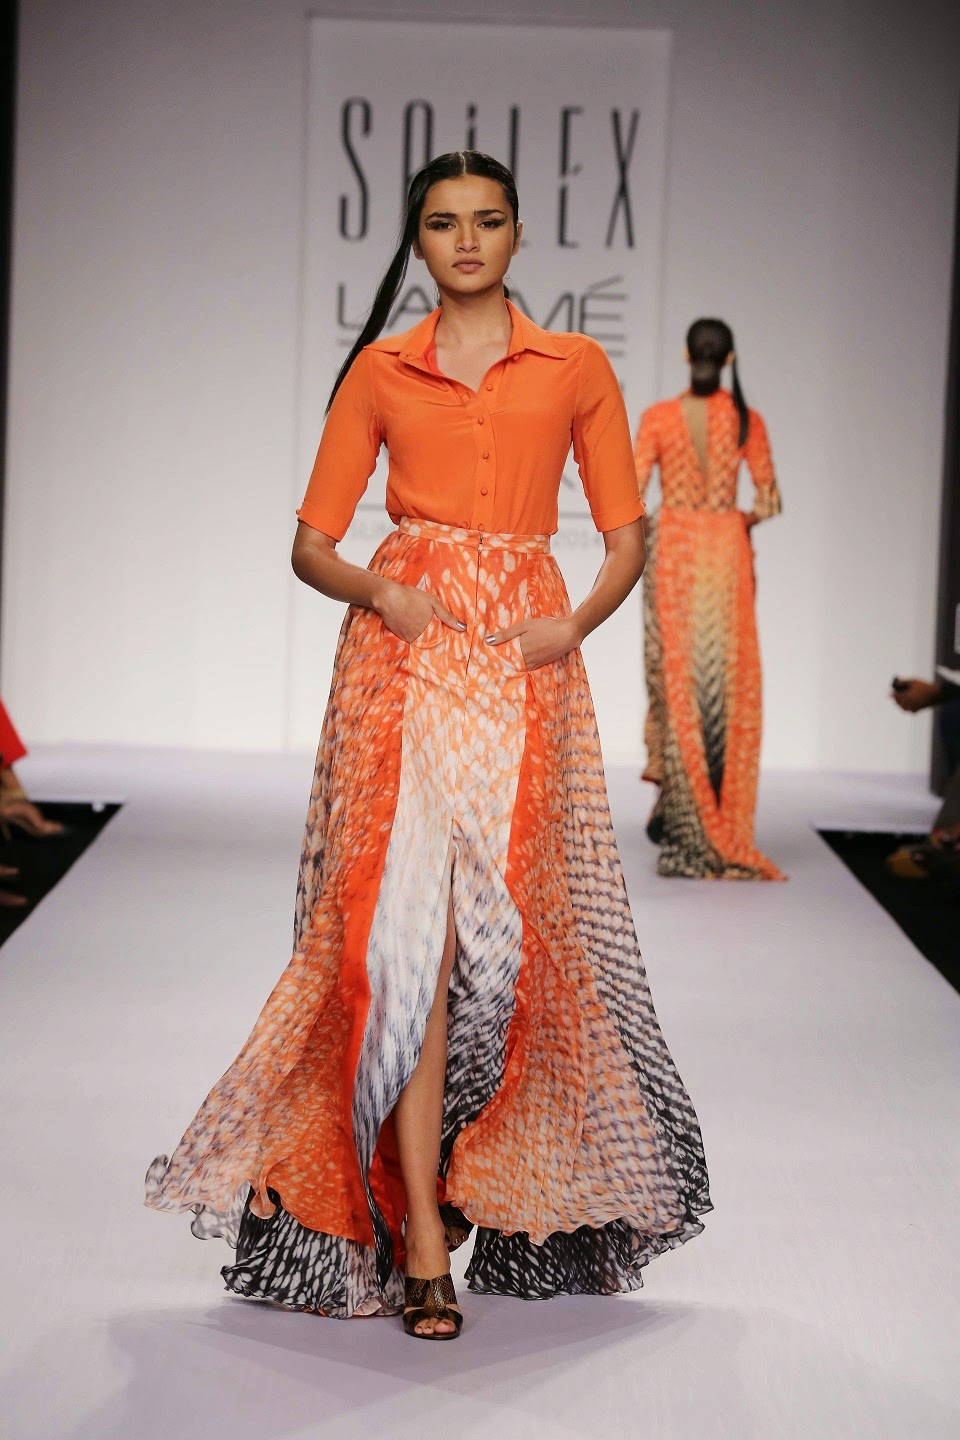 Bringing to the forefront of fashion at Lakmé Fashion Week Summer/Resort 2014, Sailex presented a stunning line of stylish women's wear that fitted in perfectly with the rising mercury.